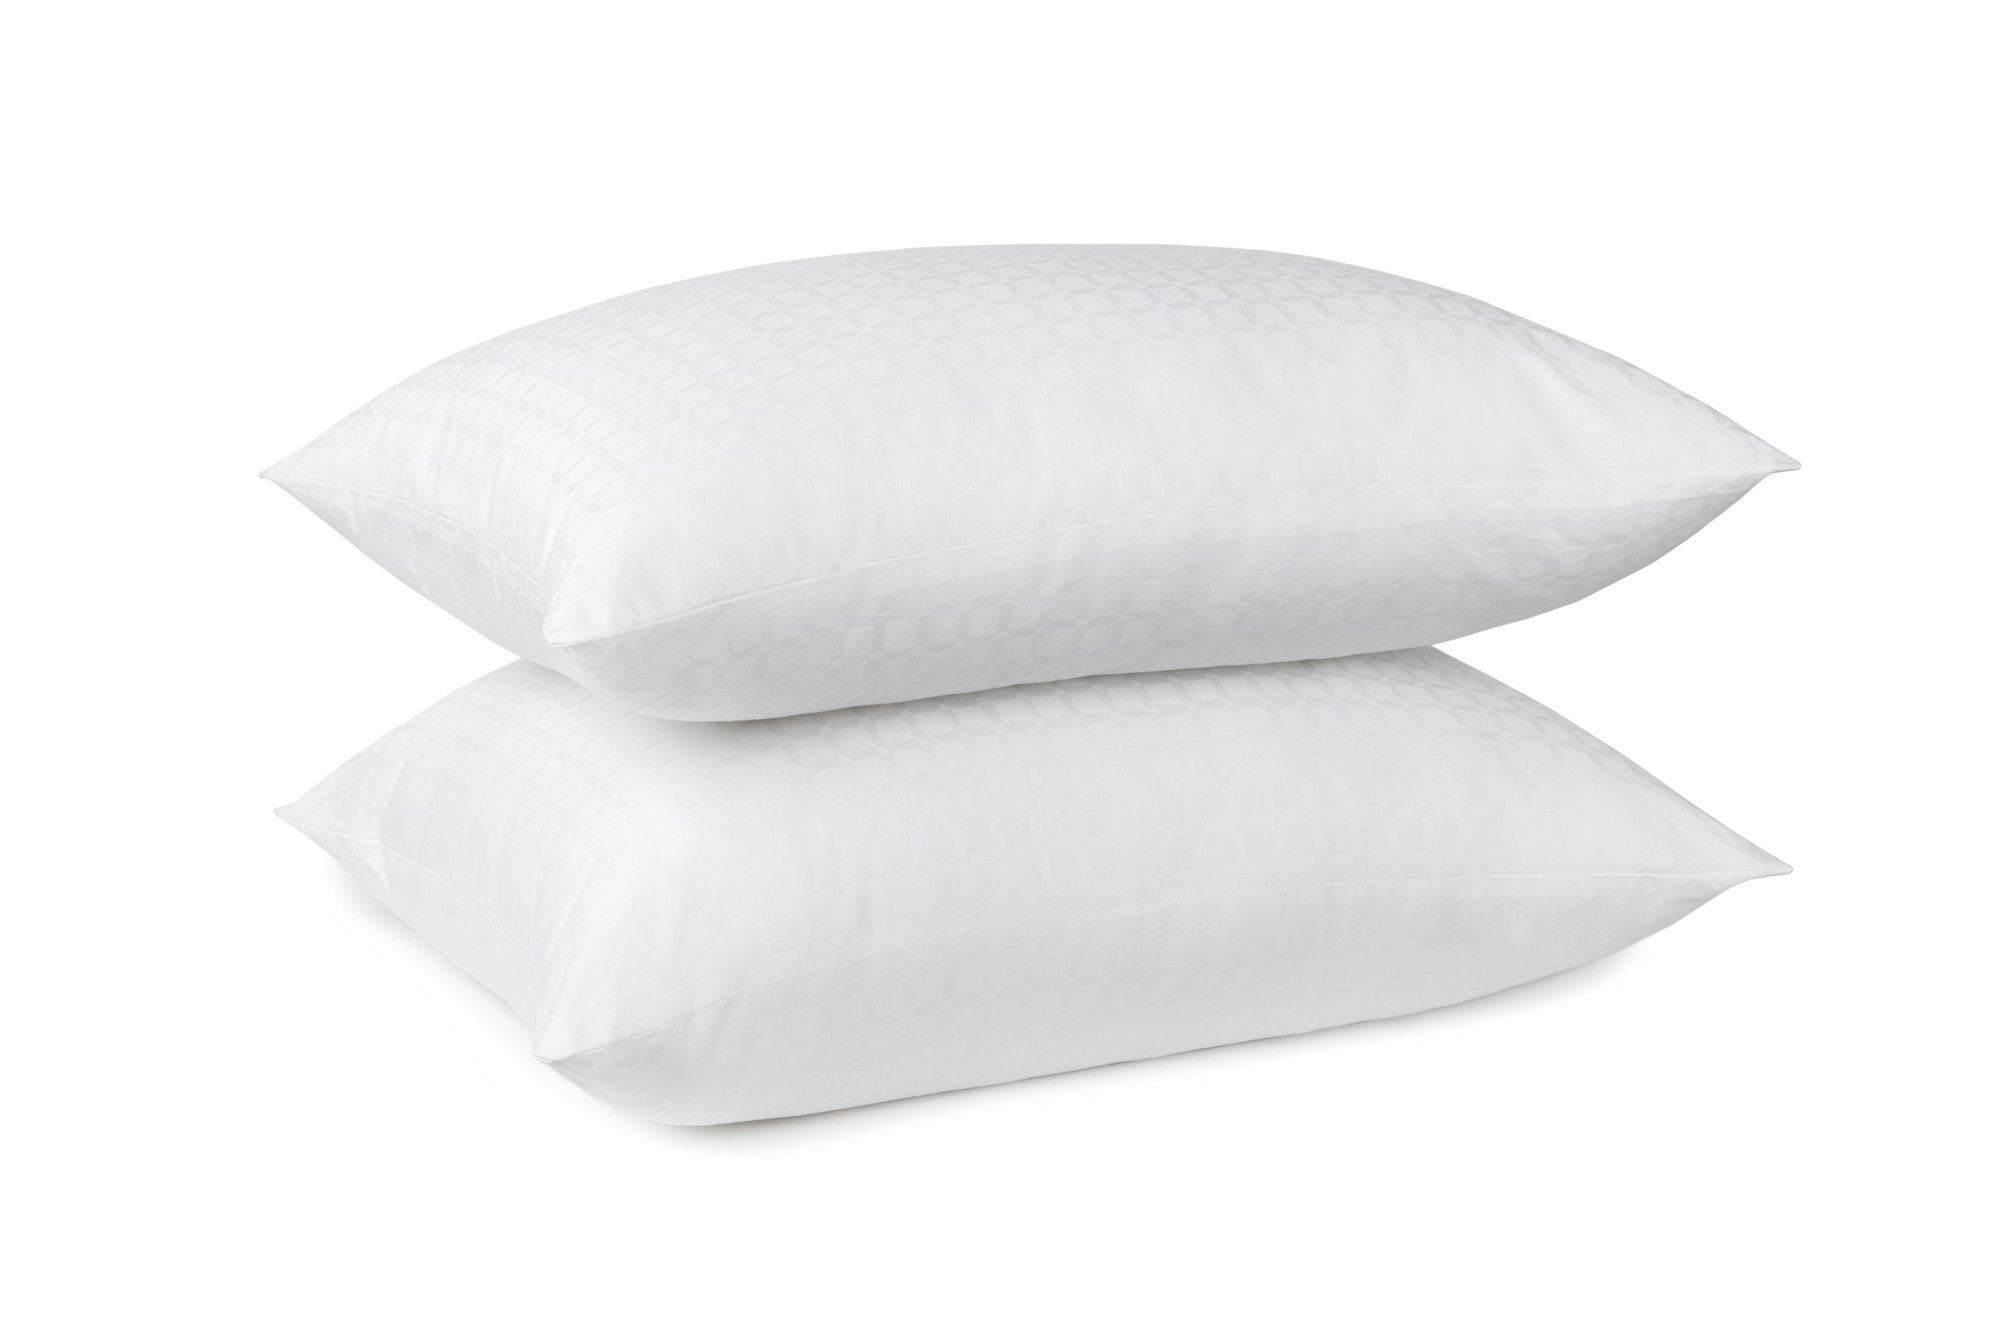 All Sleep Position Bed Pillows (Set of 2)